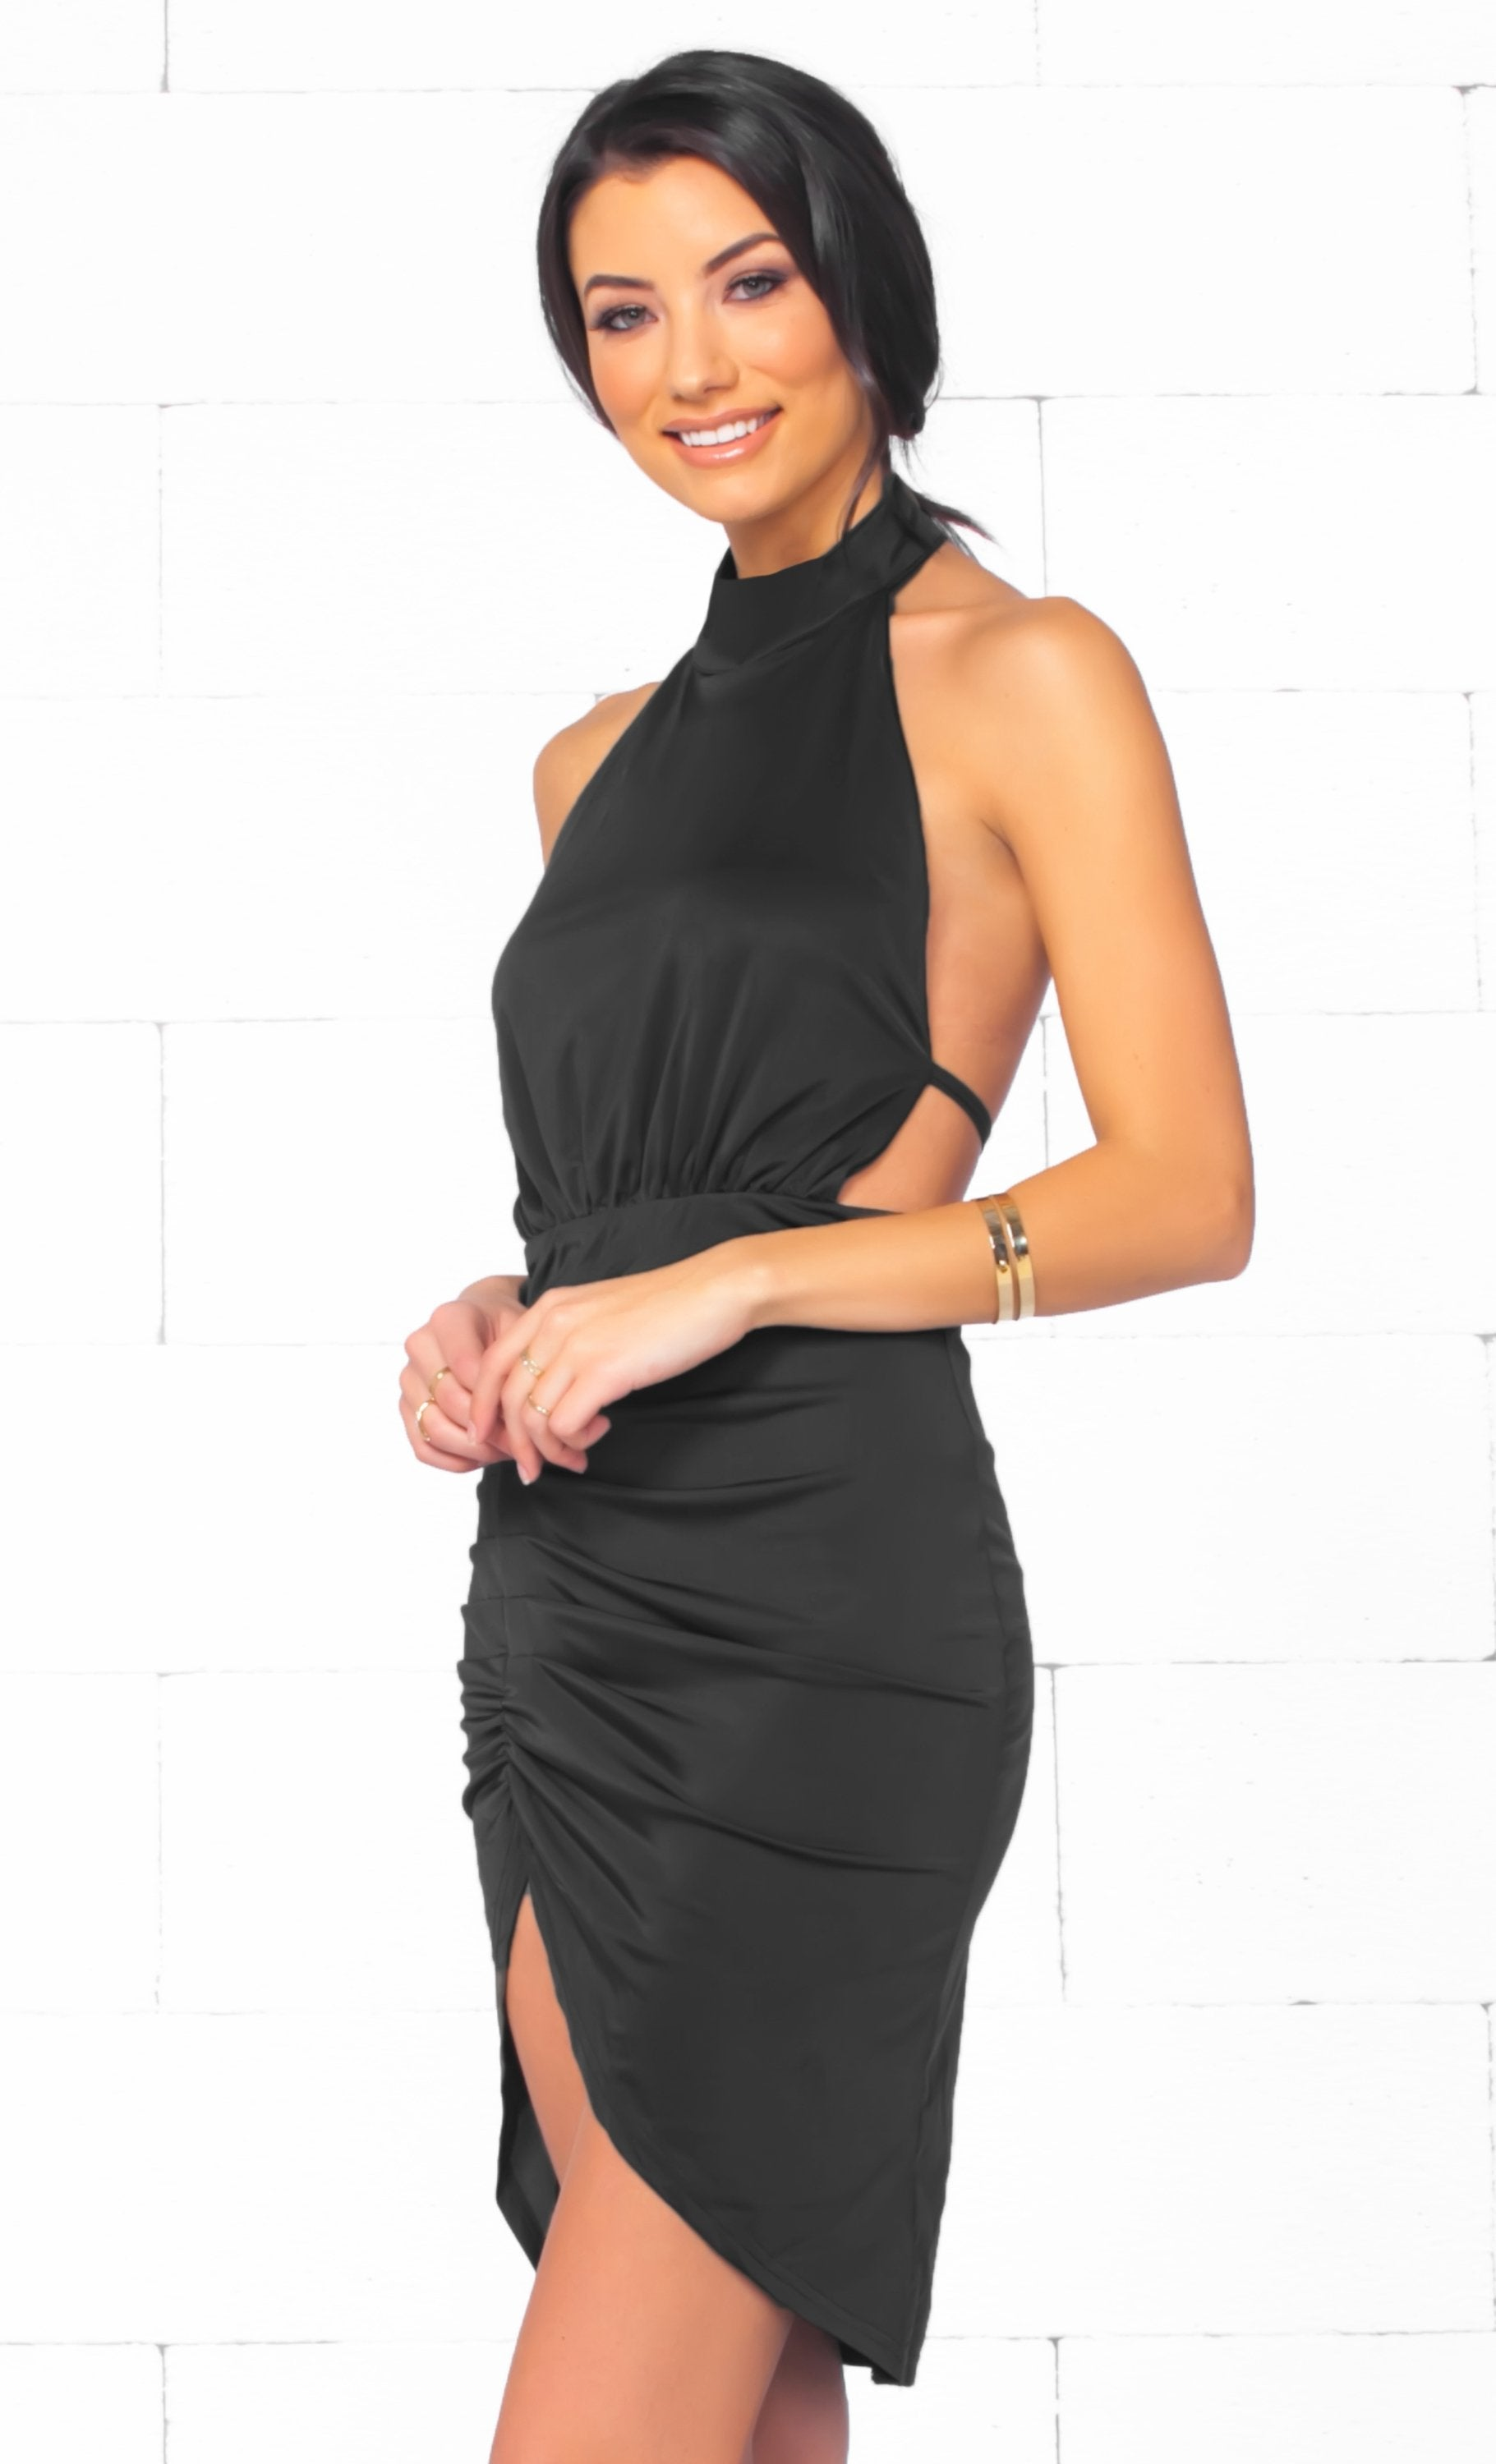 stud dress backless sleeveless pinterest pin products